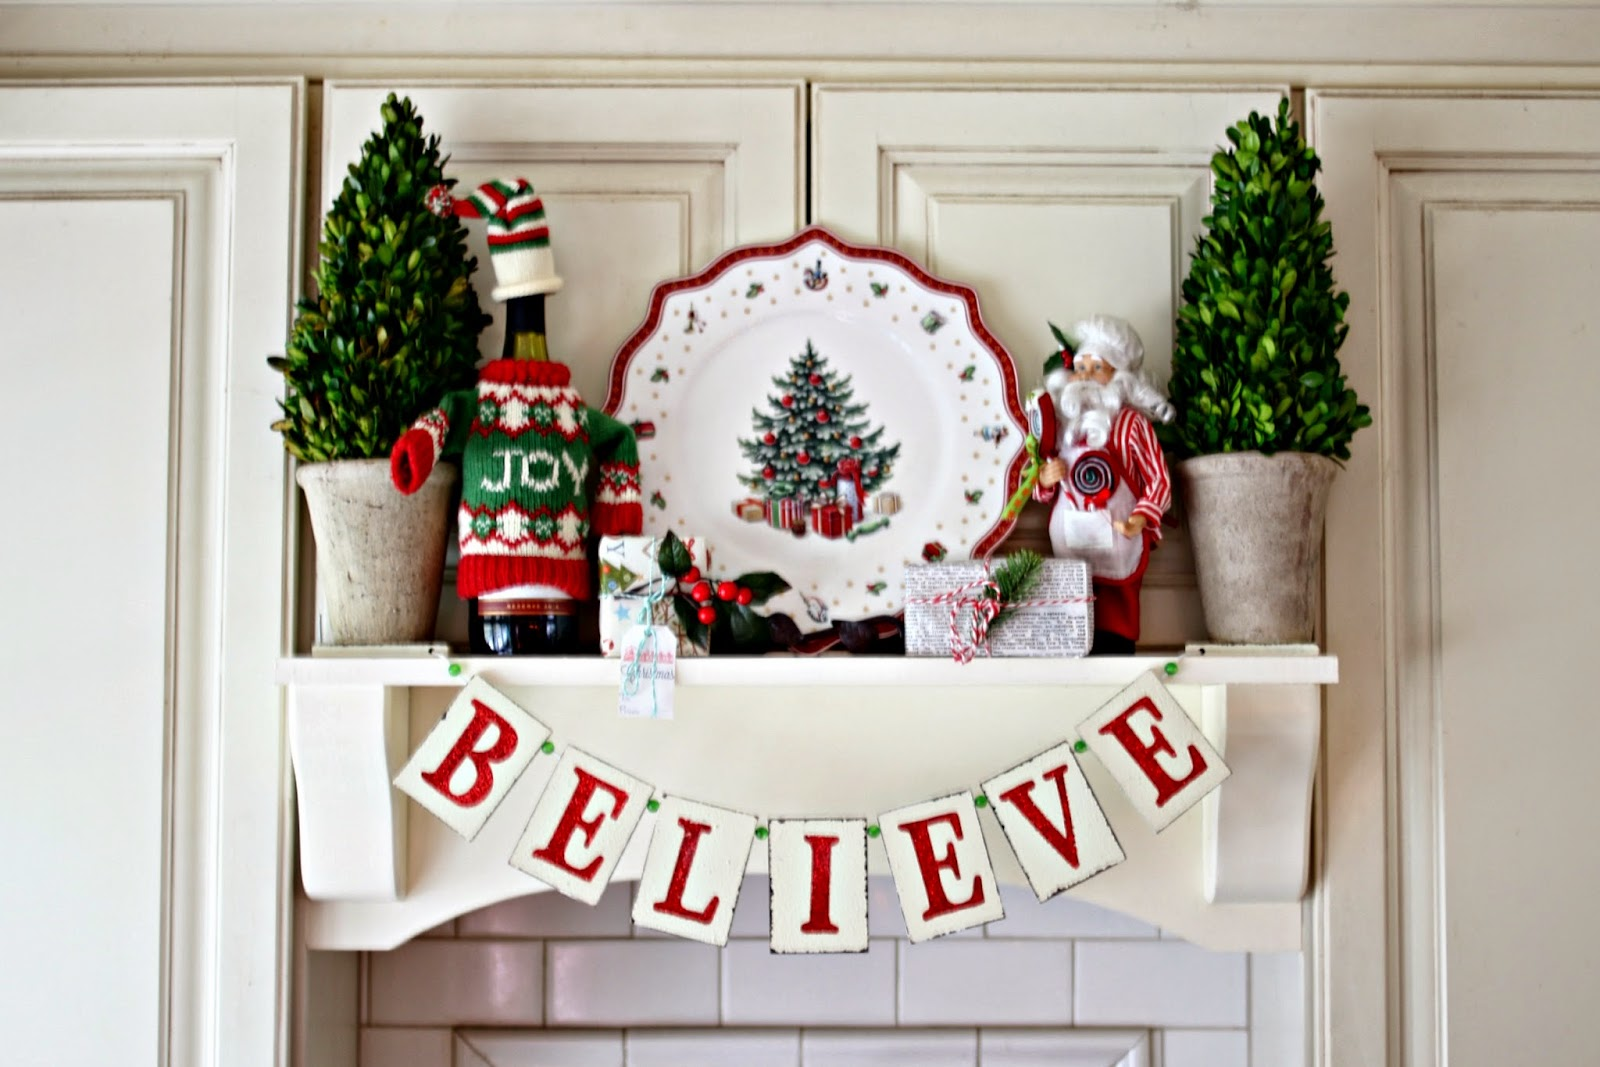 DIY mantel hood with Christmas decor-www.goldenboysandme.com